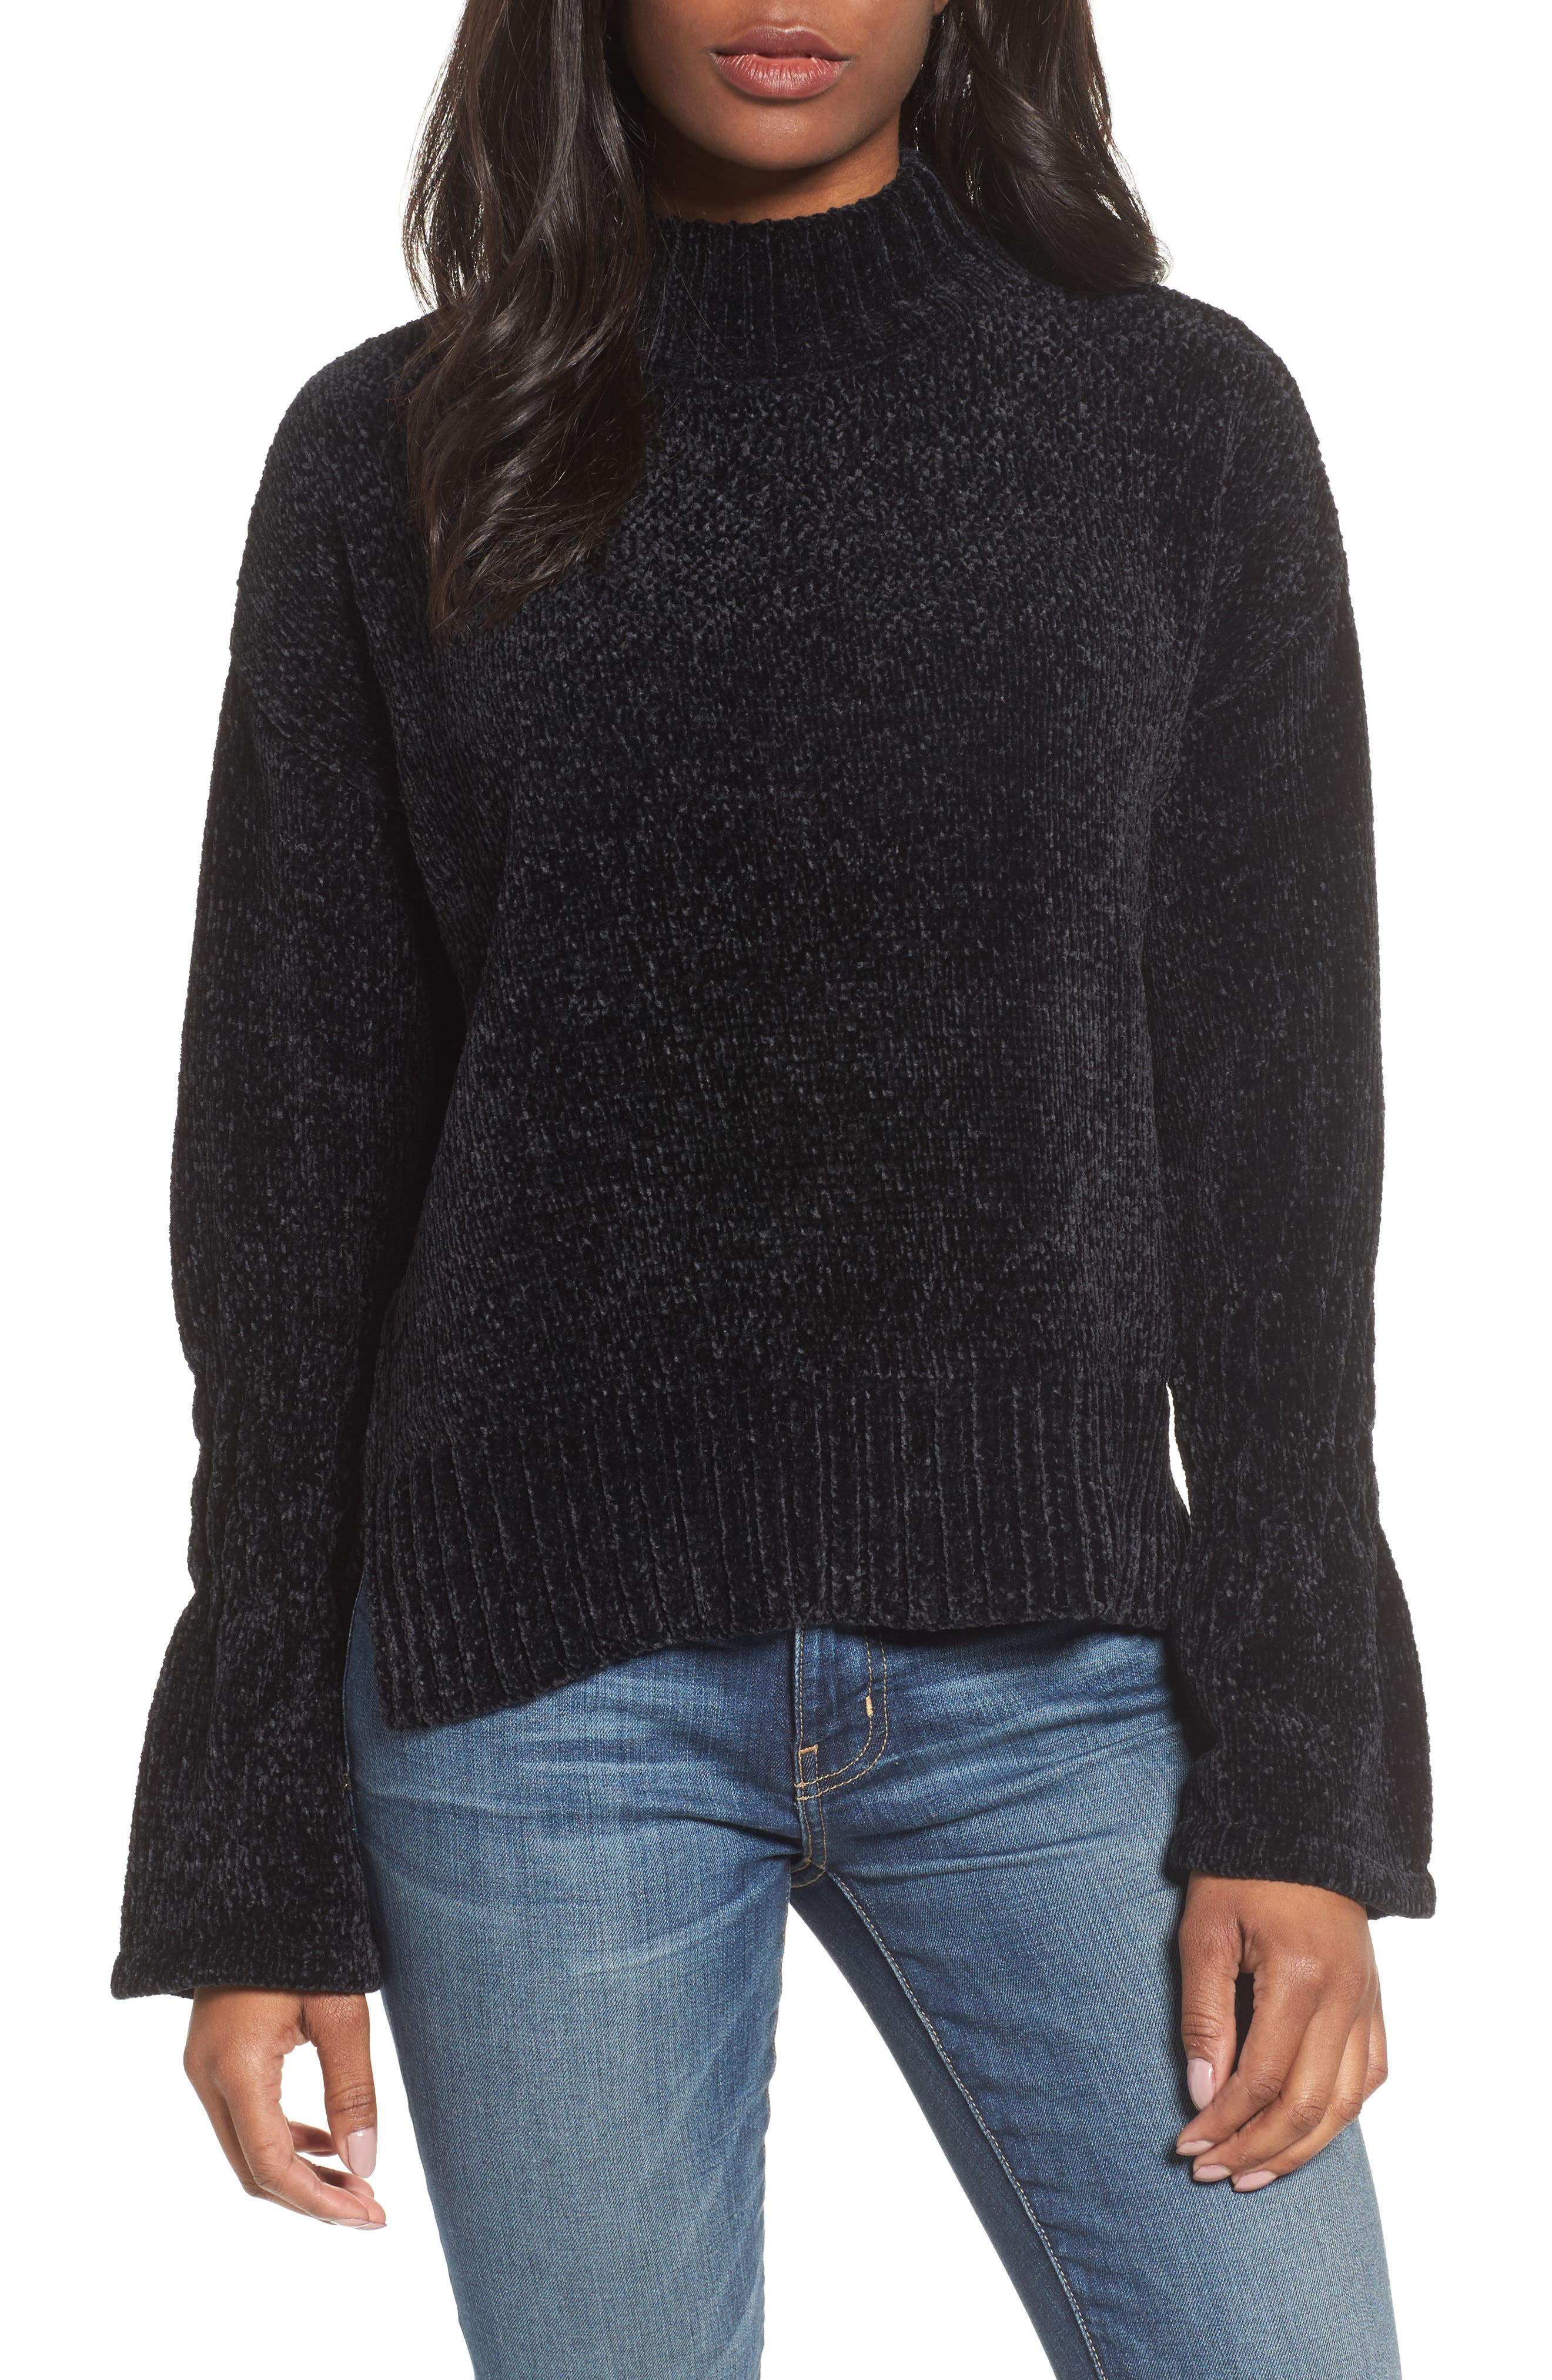 Main Image - RDI Bell Cuff Sweater